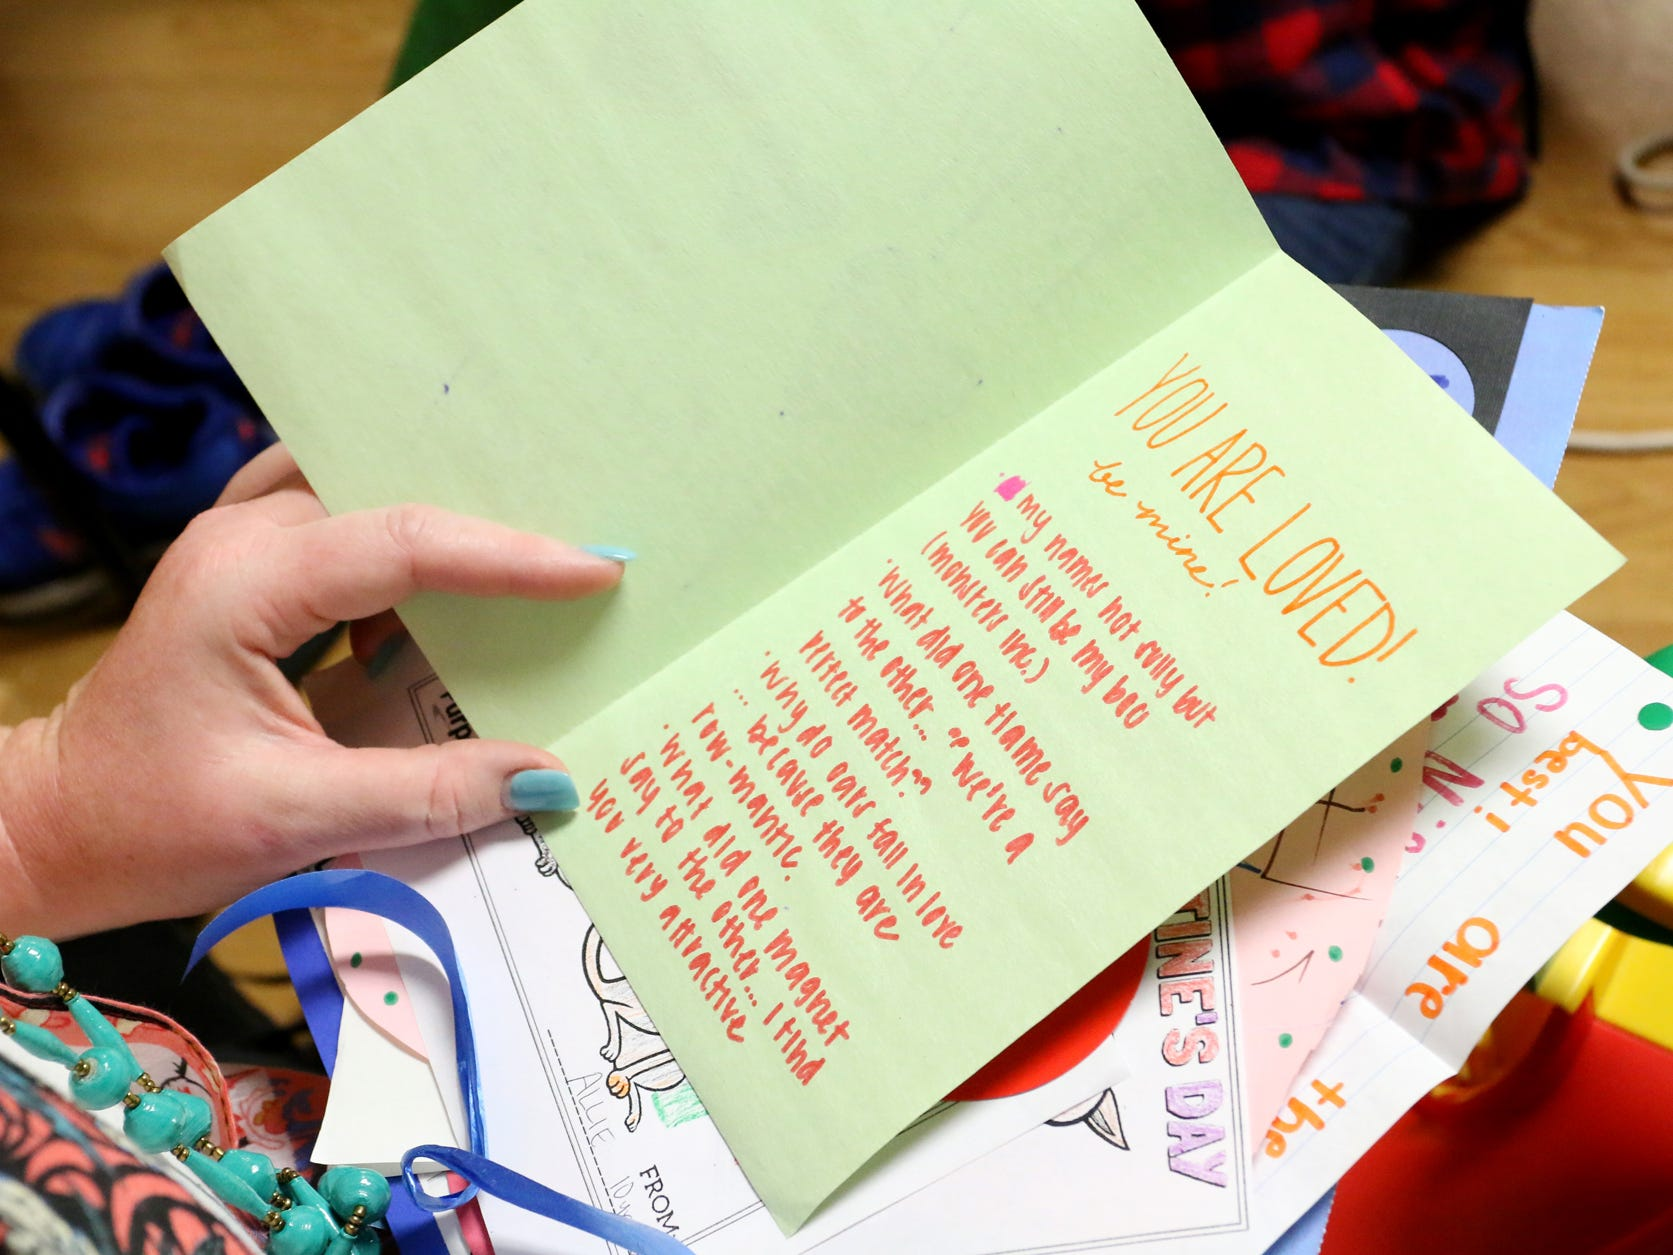 Amber Twomey reads the Valentine's Day cards that were given to her son at the Prisma Health Children's Hospital.